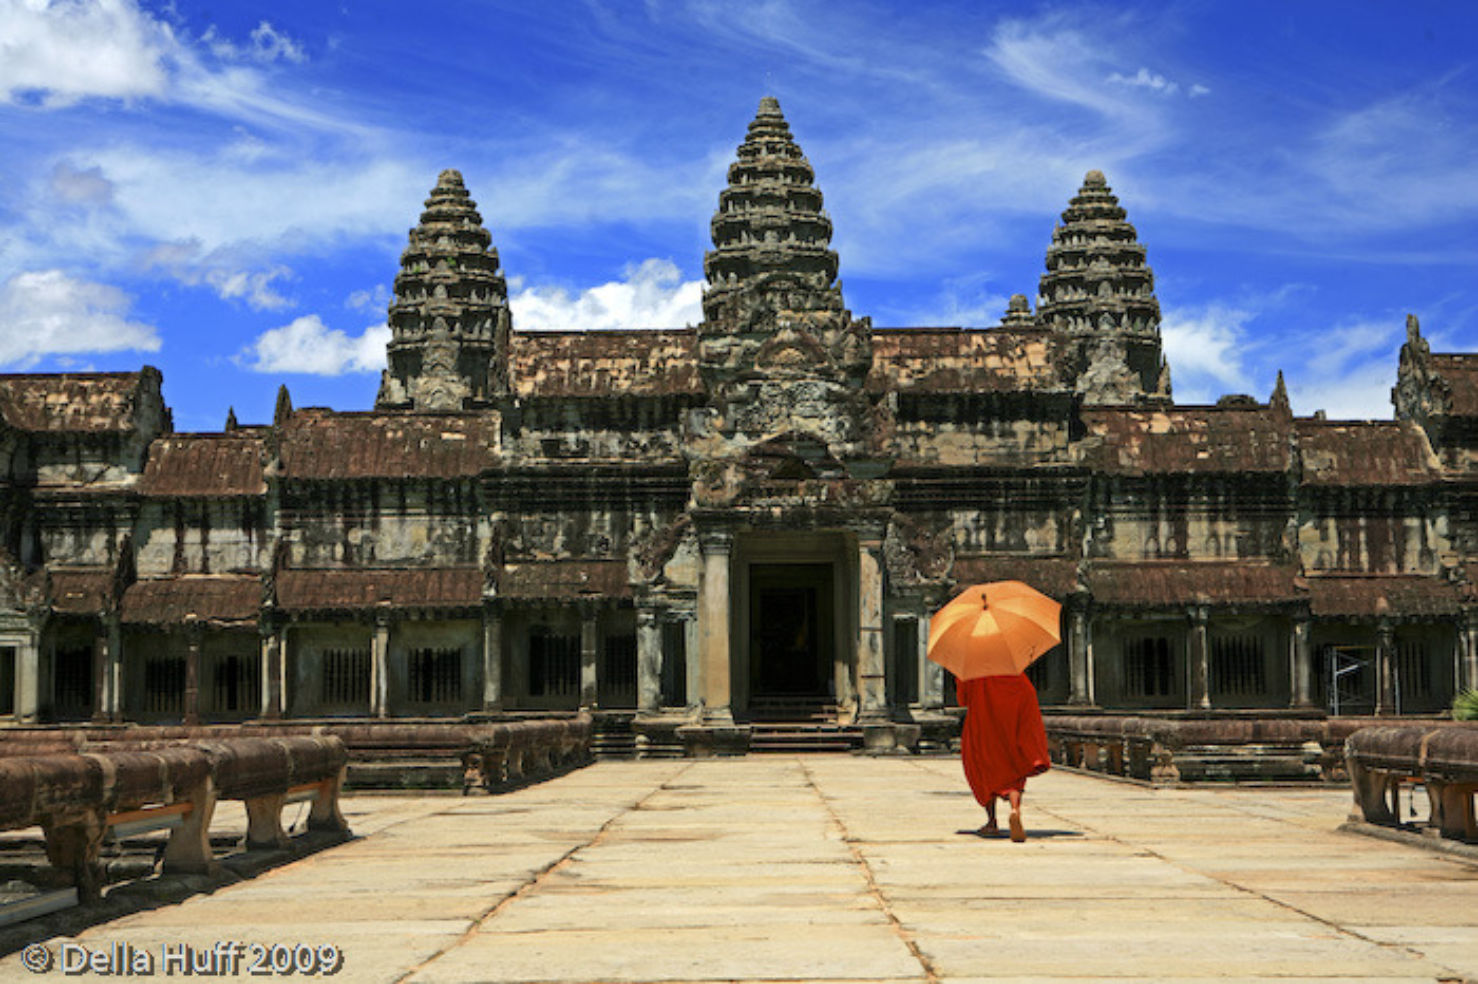 A monk visits the ruins of Angkor Wat in Cambodia.